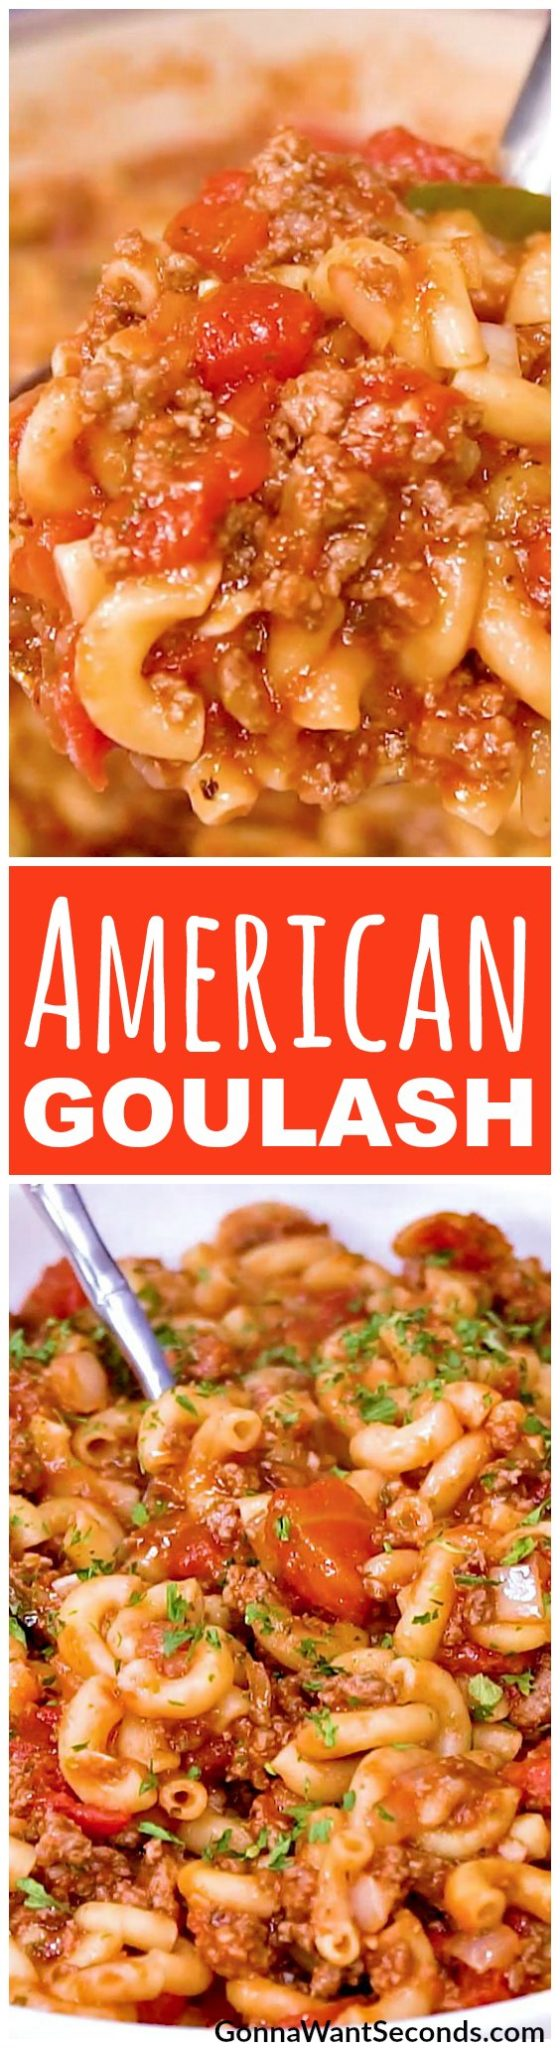 This classic American Goulash is one of those easy, home-style, comfort food dishes, made in one pot. Perfect recipe for feeding a crowd or serve half for dinner and freeze the other half for later. This beefy pasta meal is sure to please kids of all ages.  #Easy #Recipes #Spices #ChopSuey #Soup #Classic